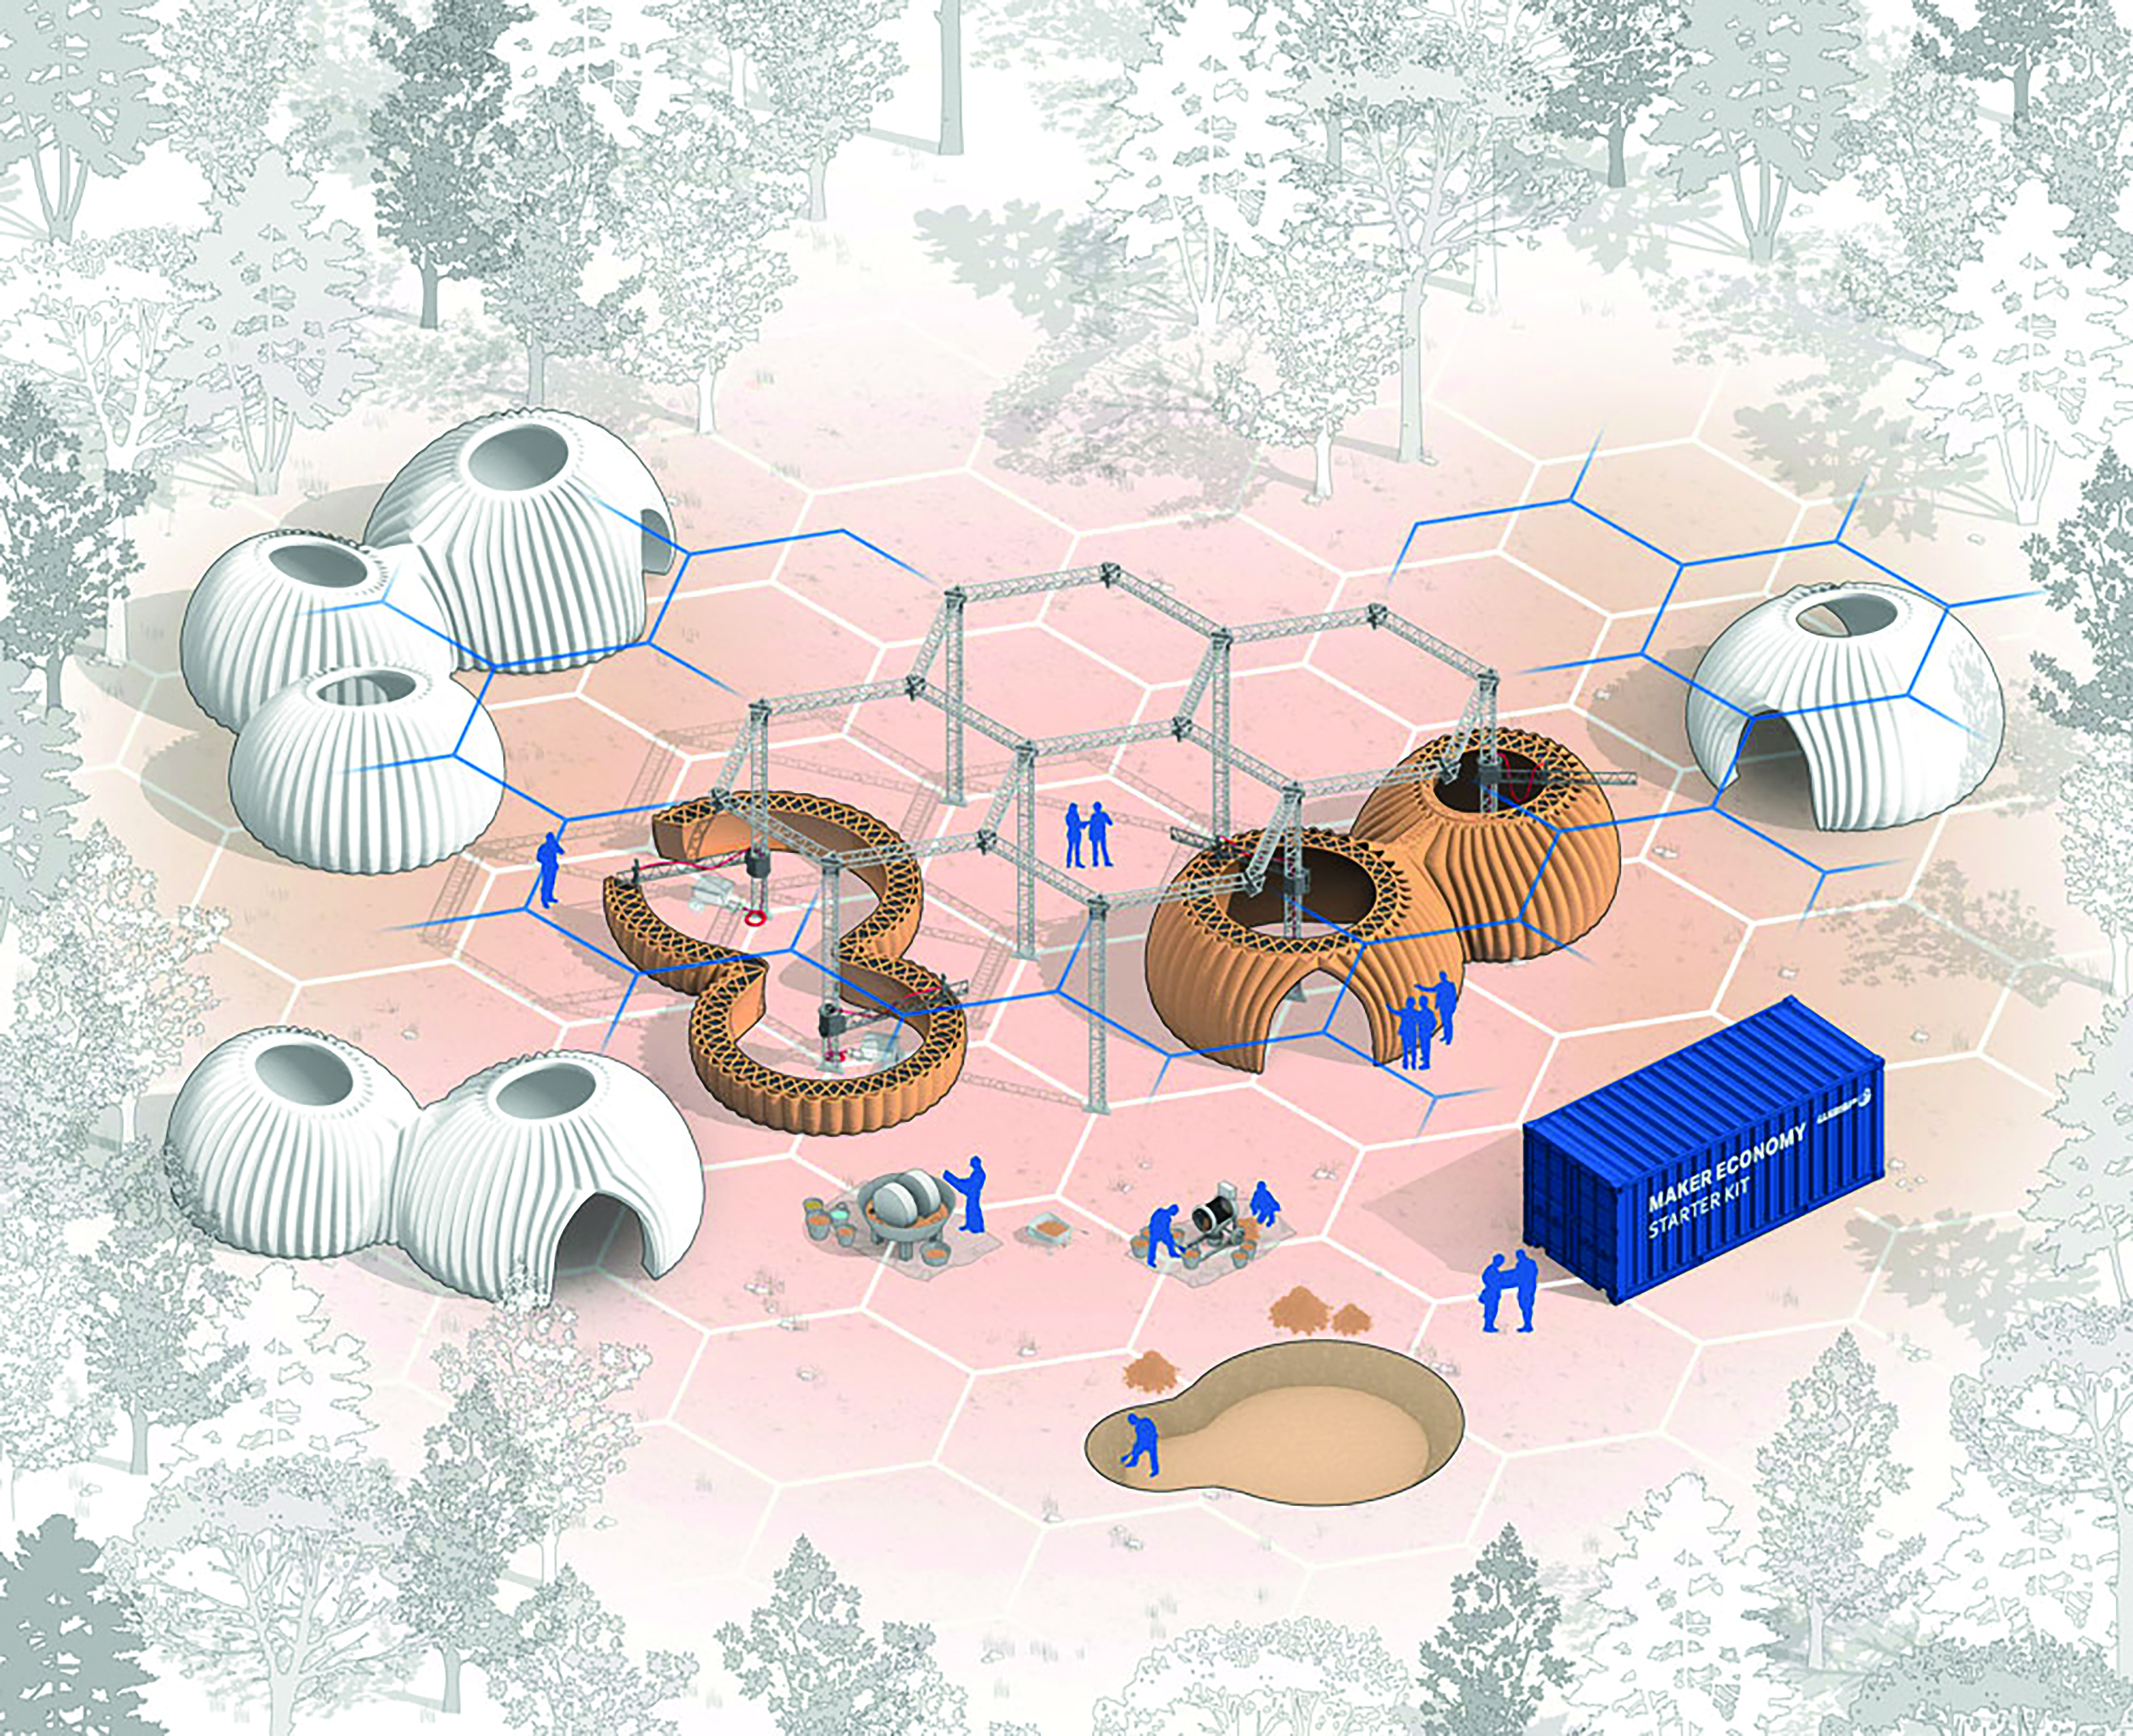 Tecla is the first habitat built using multiple Crane WASP collaborative printers simultaneously